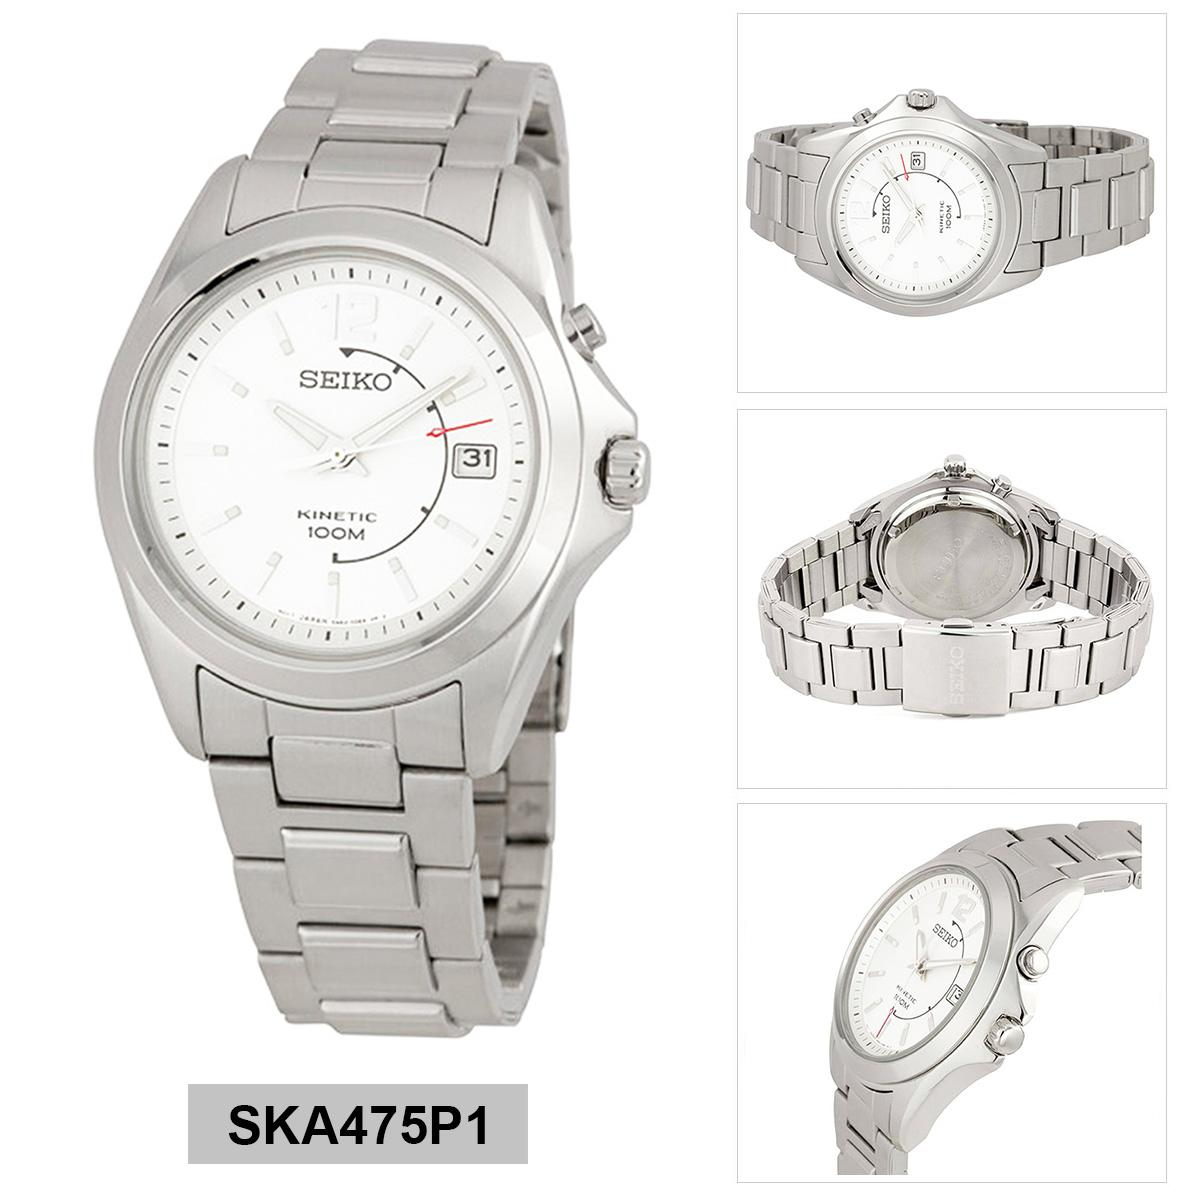 Sell Seiko Kinetic Millitary Cheapest Best Quality Th Store Ska683p1 Silver Dial Stainless Steel Bracelet Case Mens Ska267p1thb4620 Thb 4620